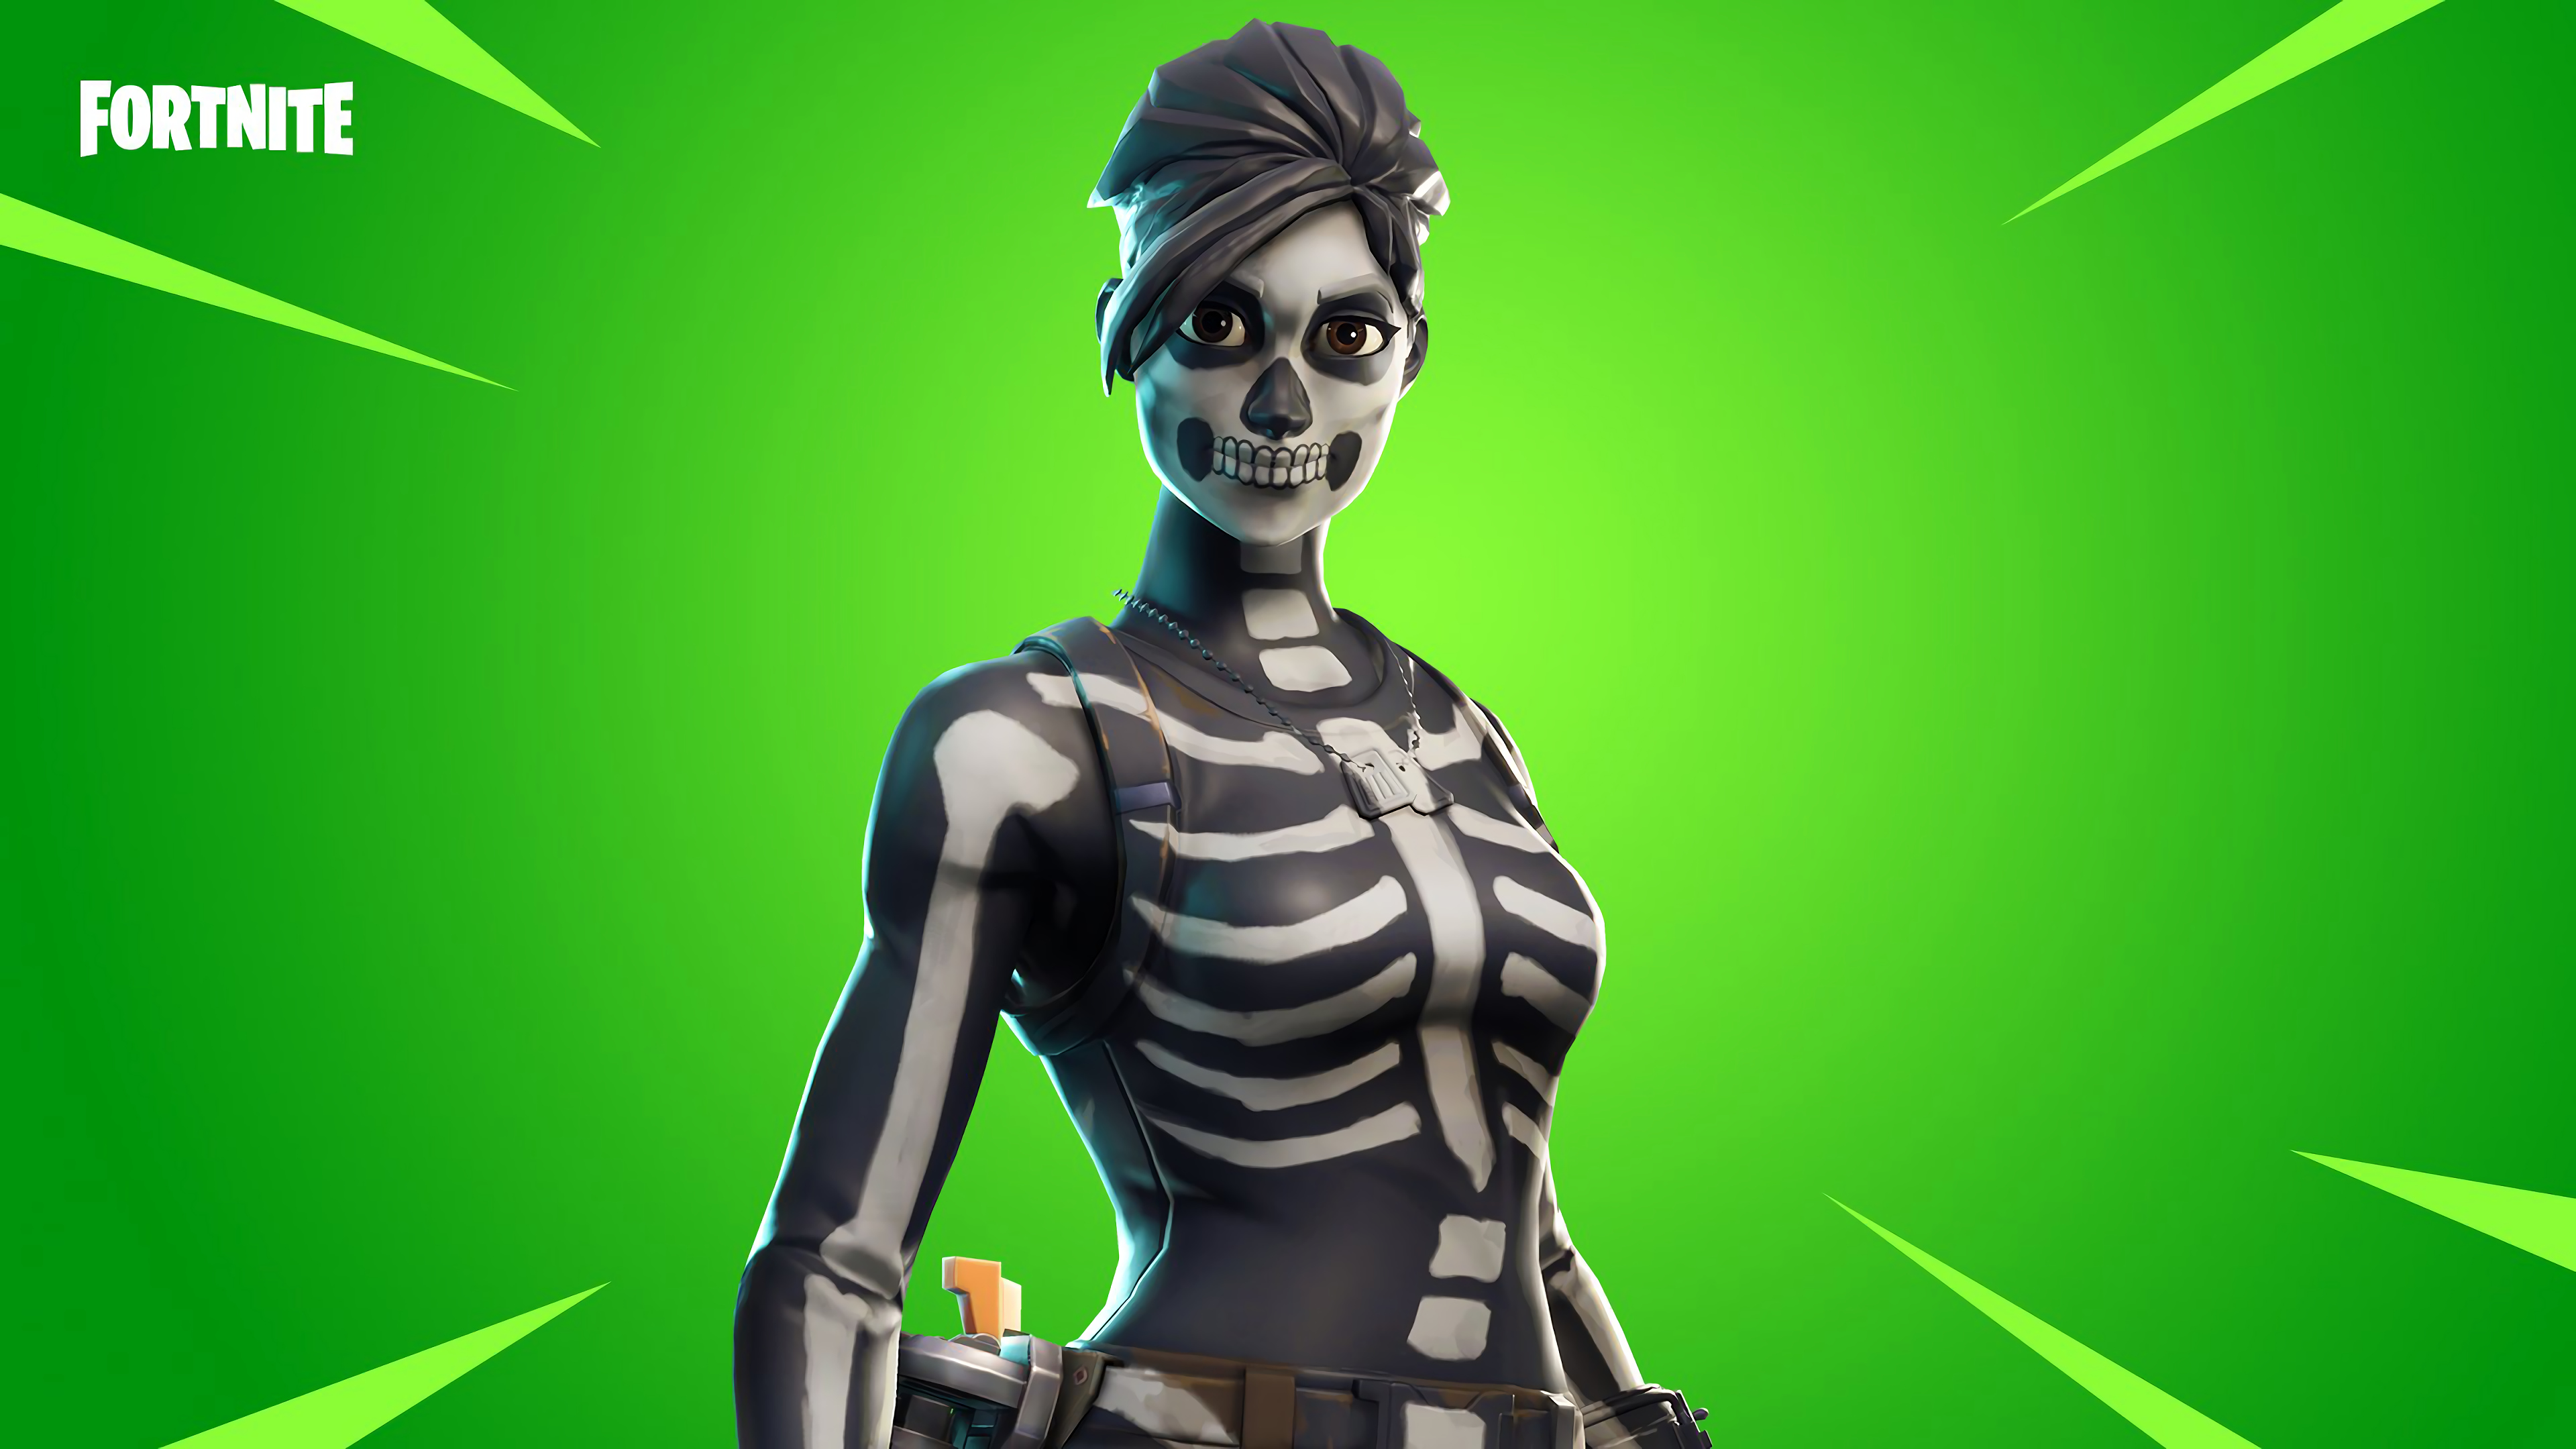 Fortnite Femake Skull Ranger Outfit 4k 4329 Wallpapers and 3840x2160